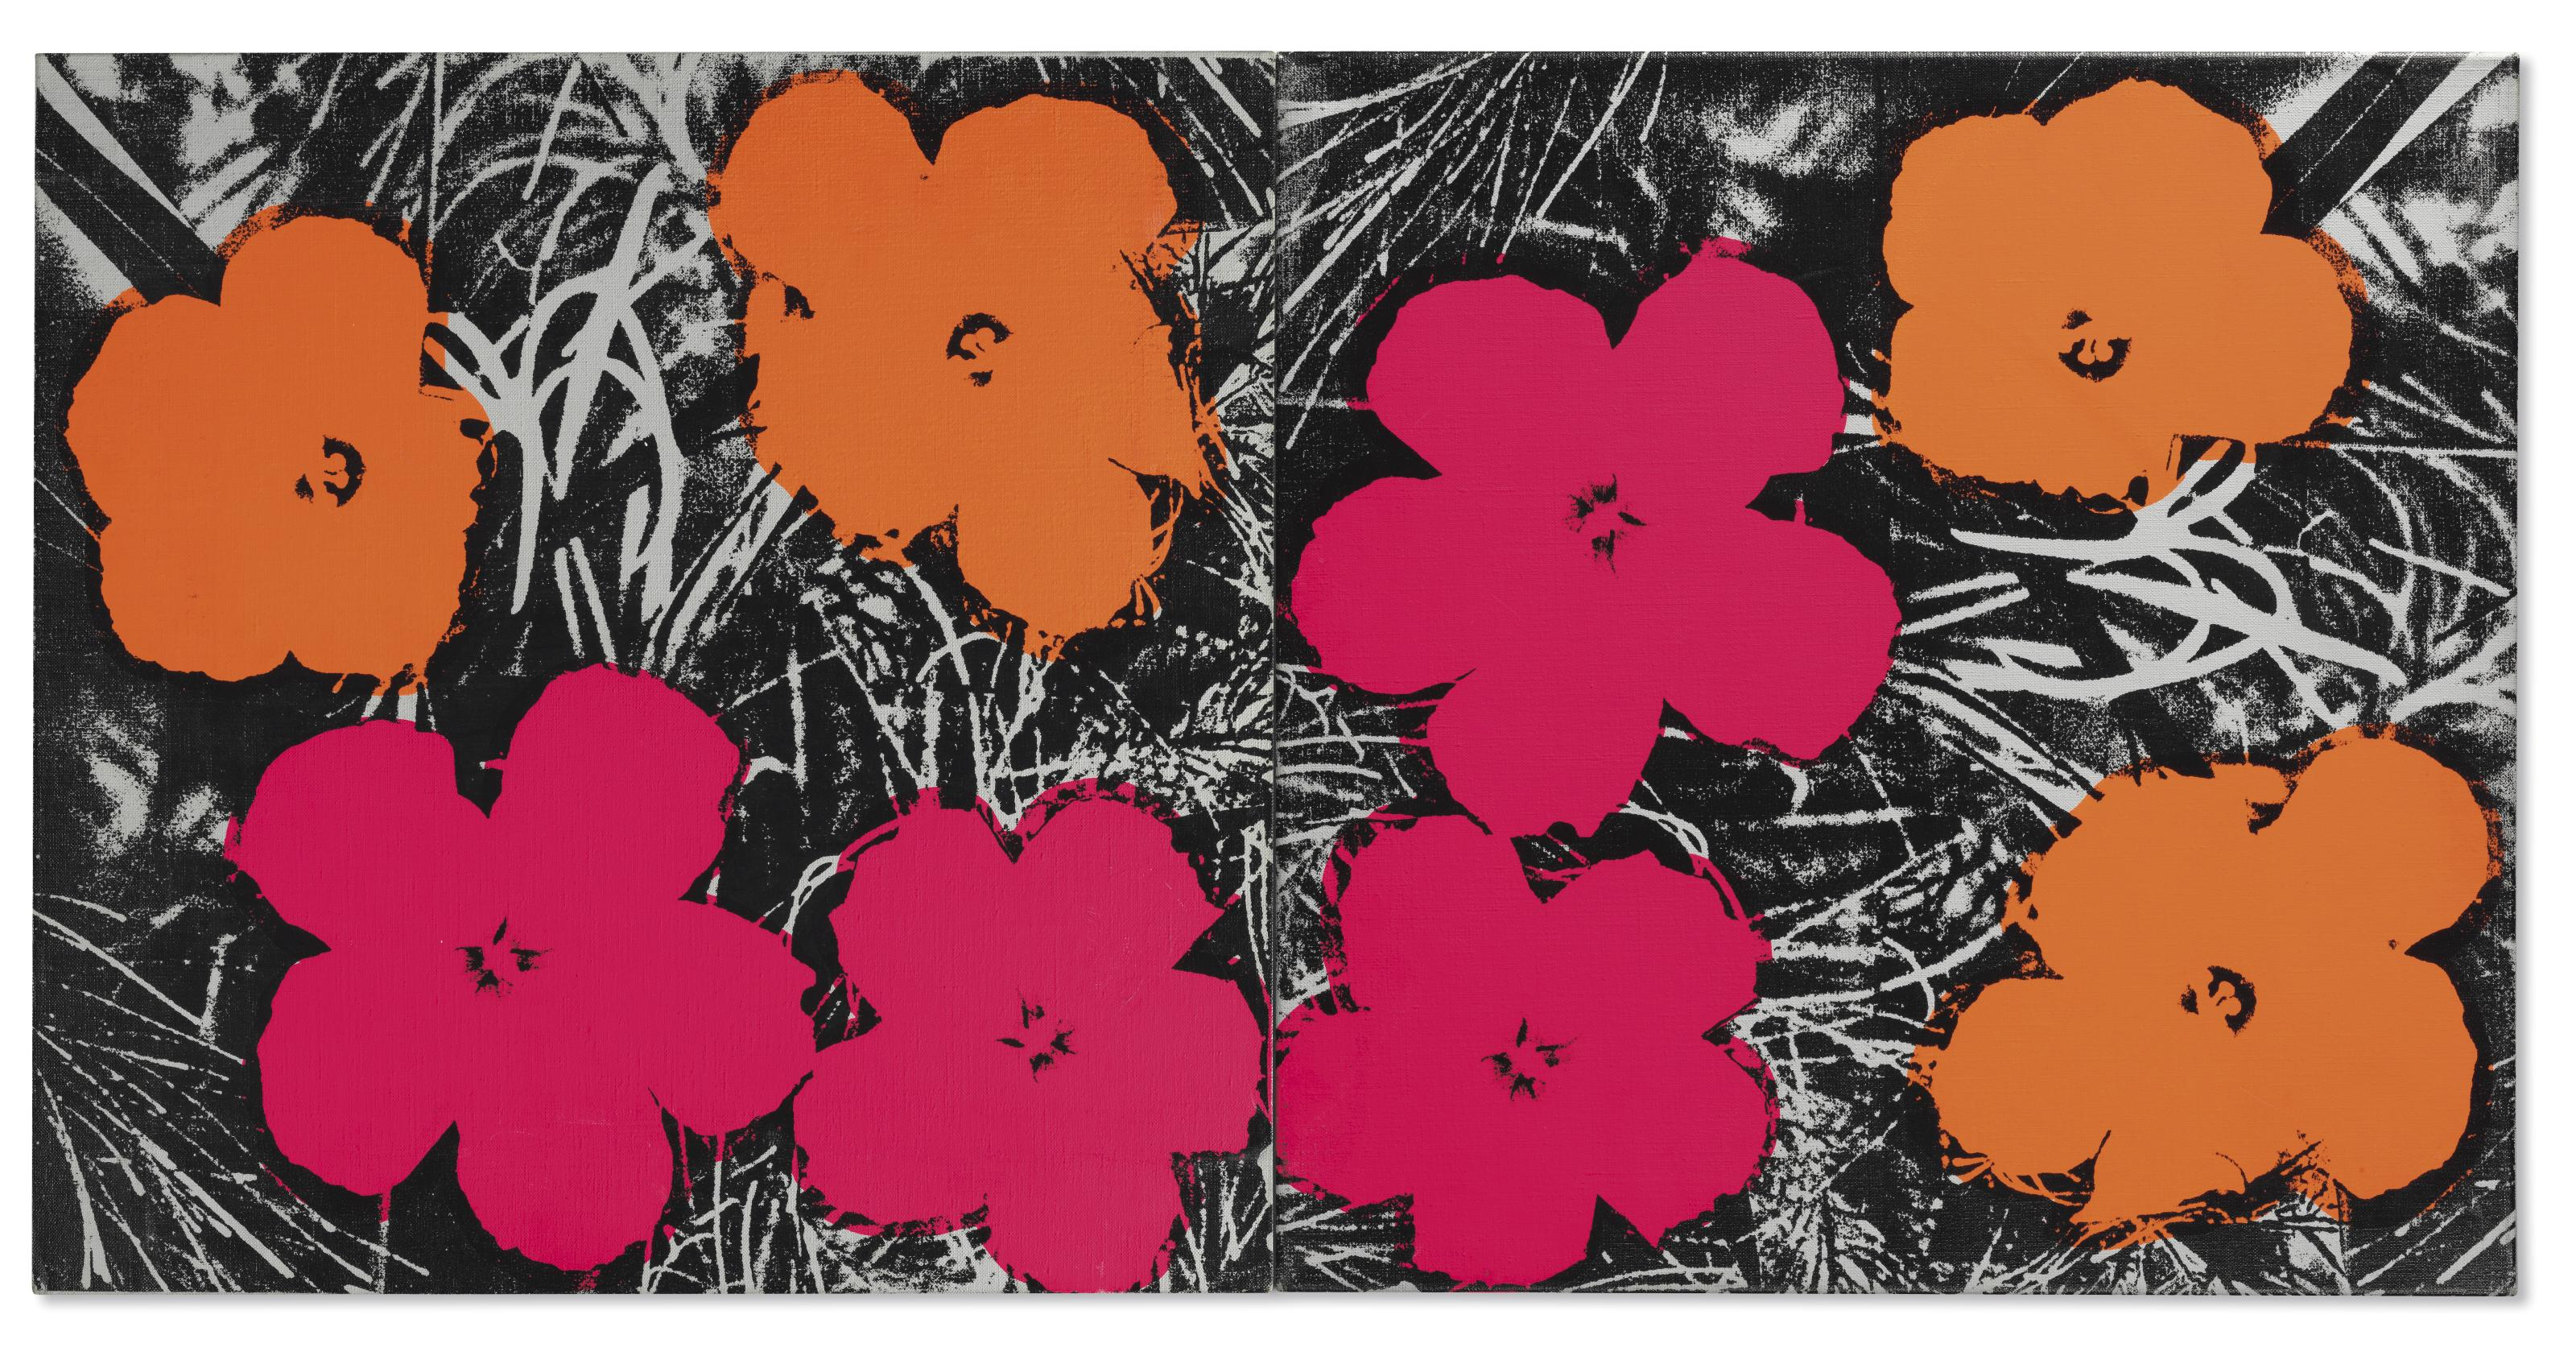 Andy warhol 1928 1987 flowers 1960s paintings christies lot 6 b izmirmasajfo Images